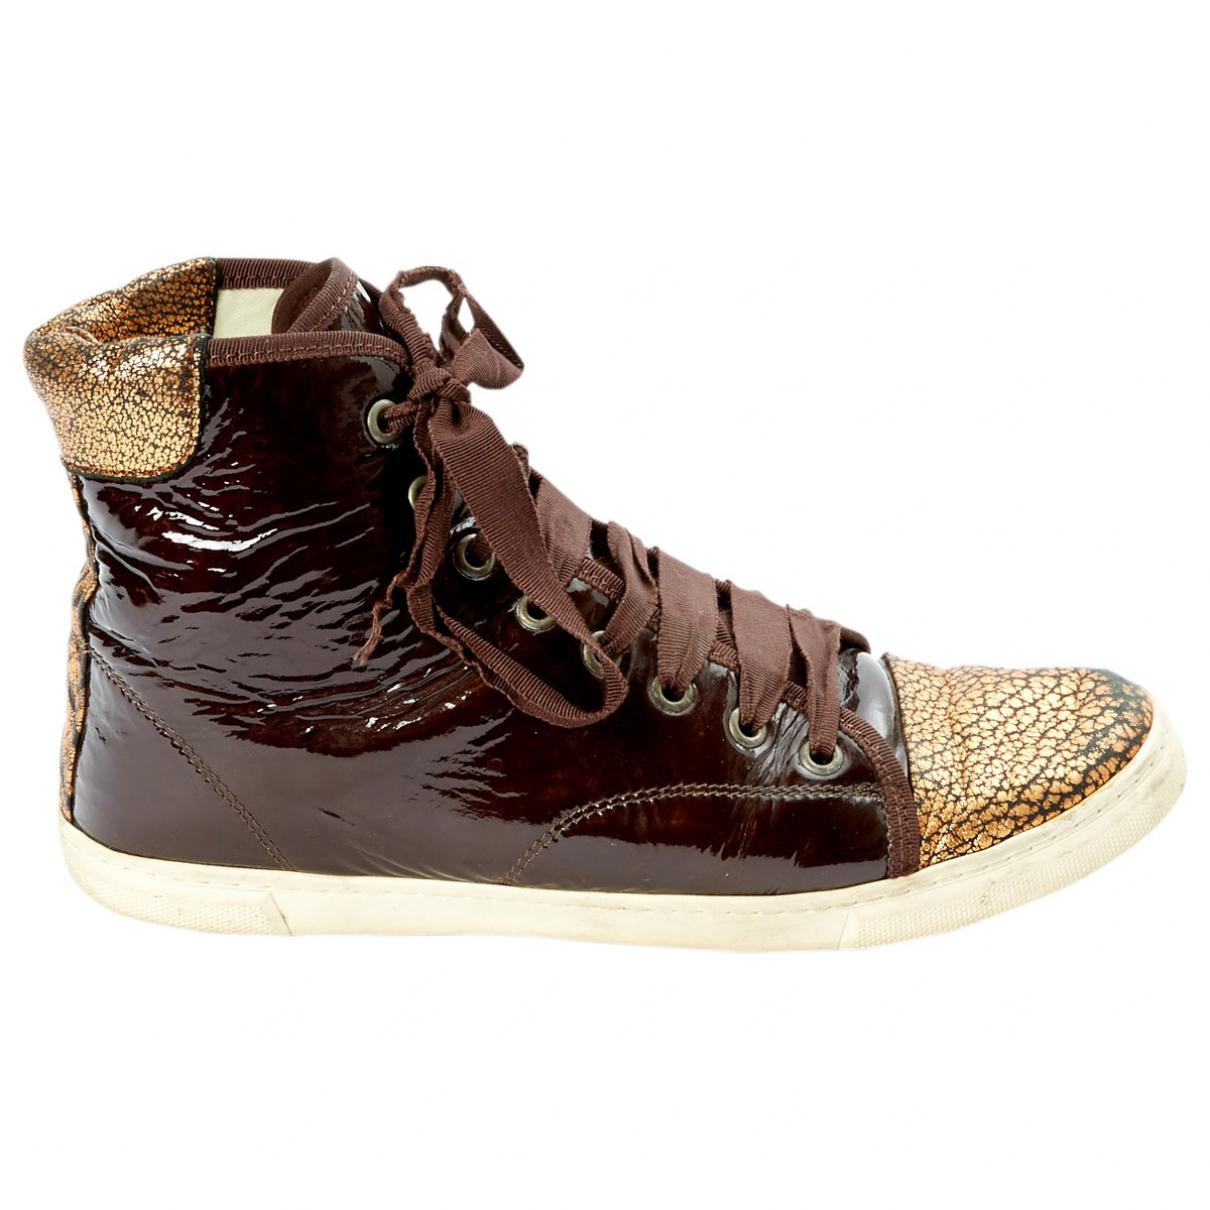 Pre-owned - Leather trainers Lanvin lF55oH